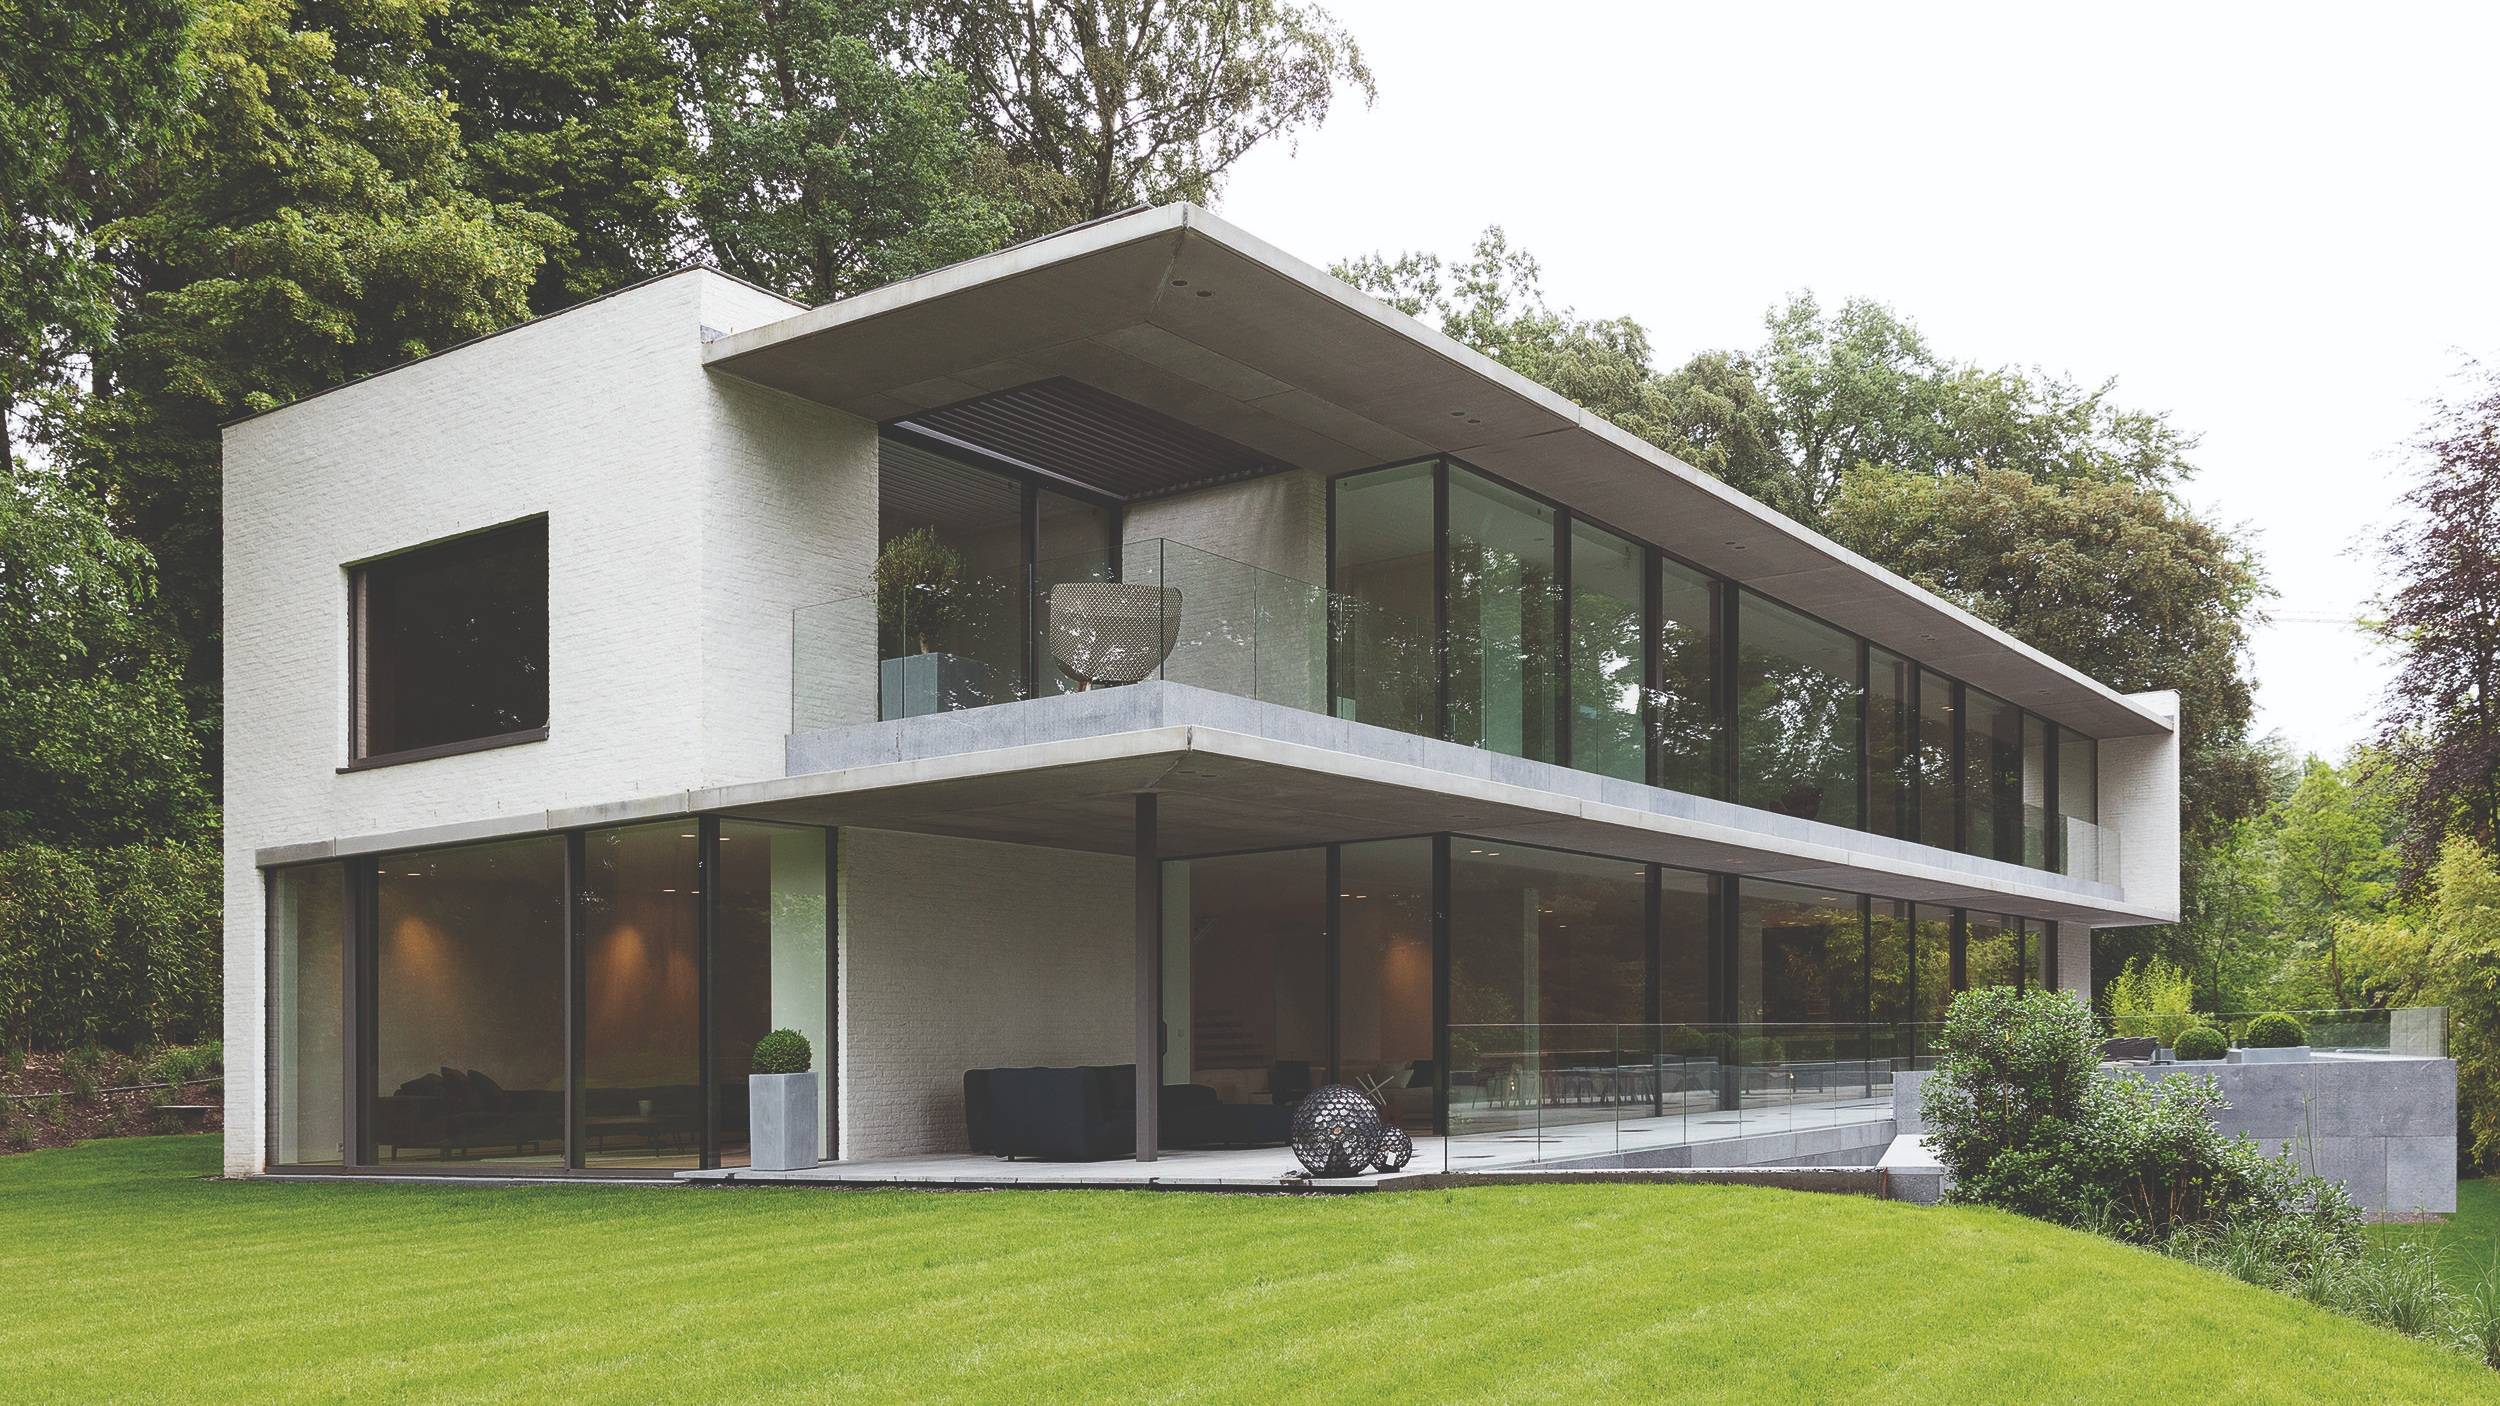 NEW BUILD - In line with the growing demand for new developments across the country, Bauxite Glazing Specialists are fast becoming a partner of choice for many fenestration and construction projects in the New Build sector.